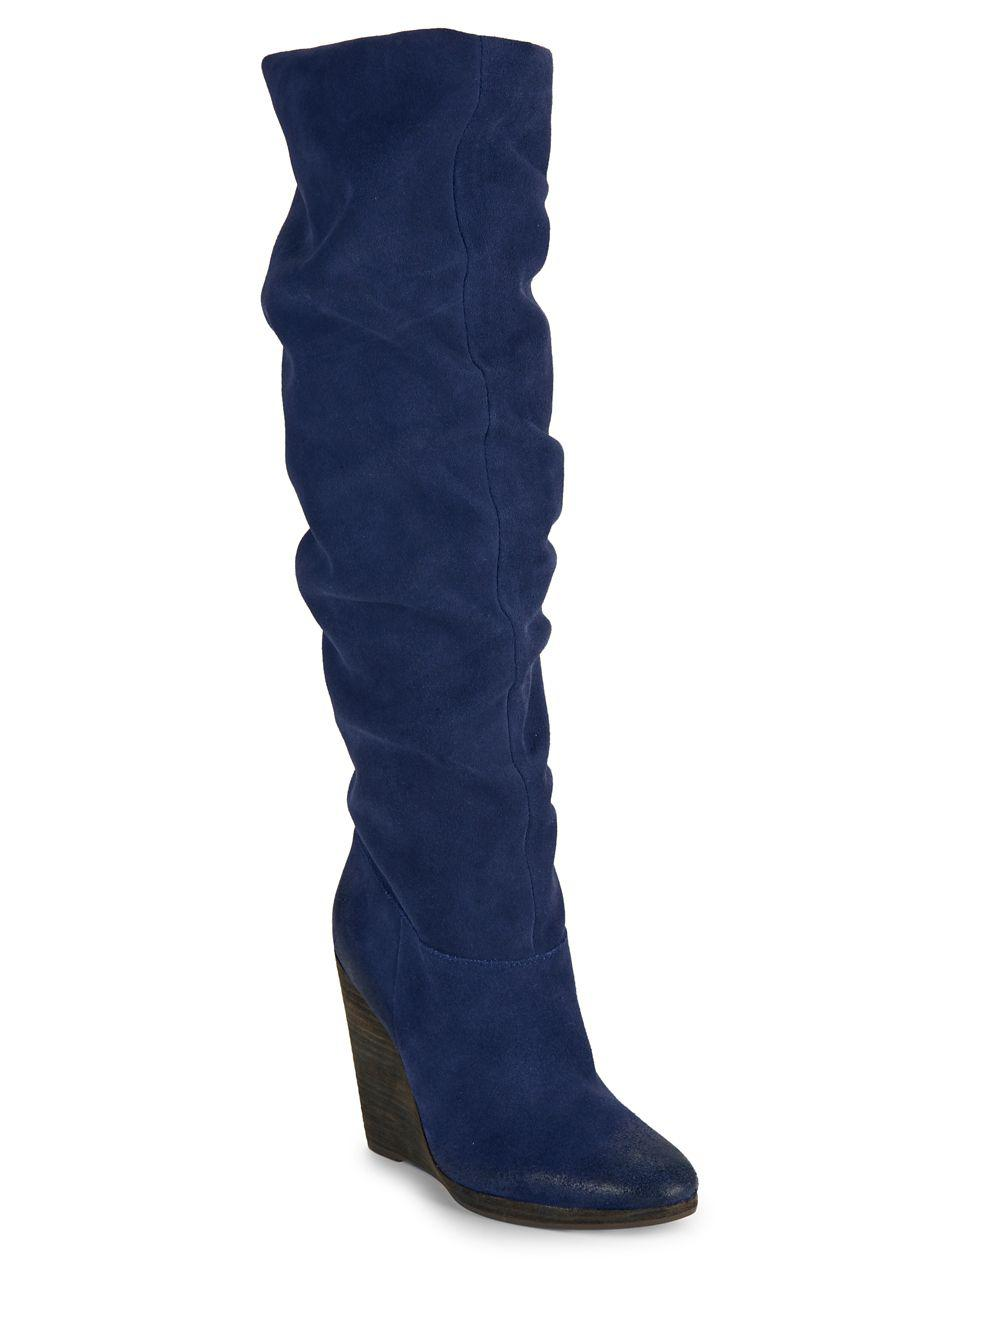 7bc7fe123ebf Charles David Holly Suede Boots in Blue - Lyst